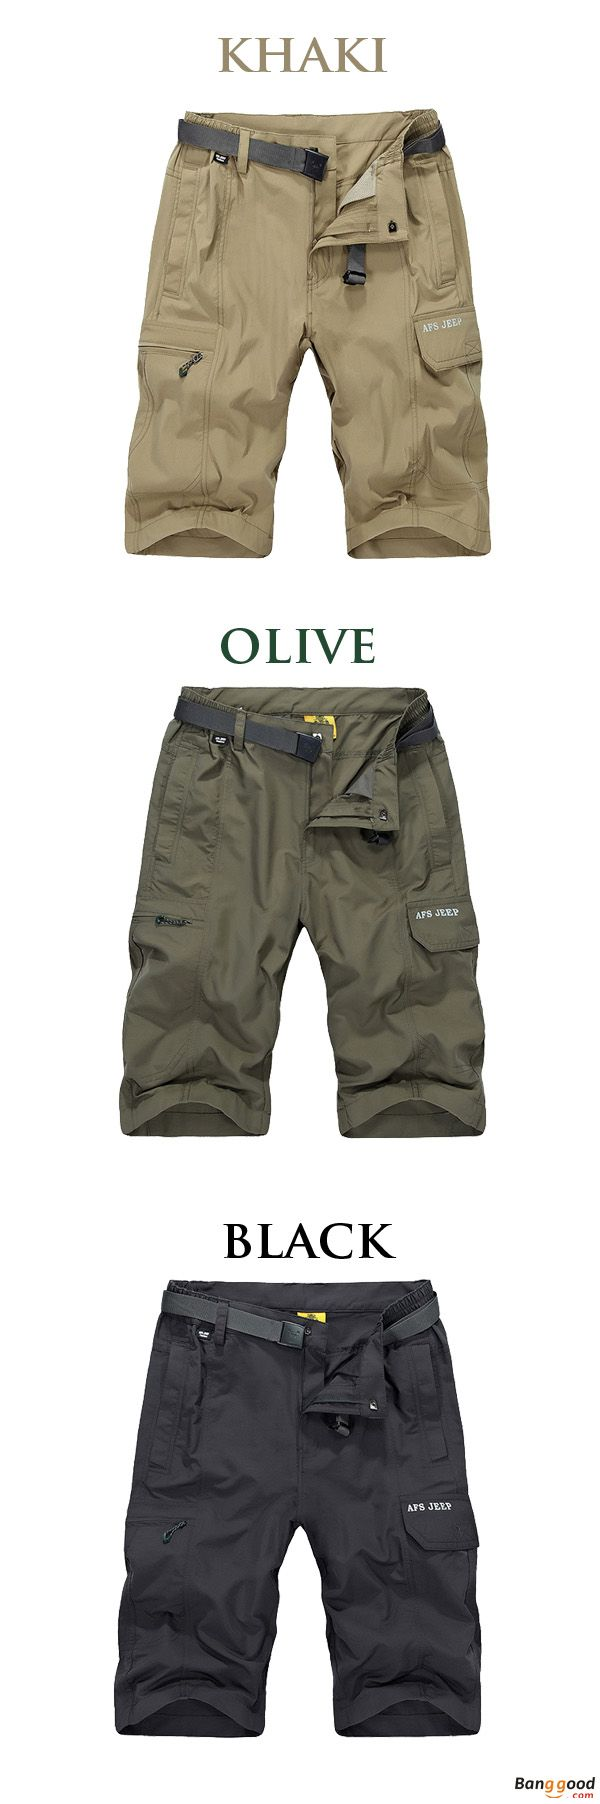 US$29.97 + Free Shipping. Mens Shorts, Men's Pants, Men's Trousers, Waterproof Pants, Quick Drying Pants, Breathable Casual Shorts. Color: Khaki, Olive, Black. Comfortable & Stylish!